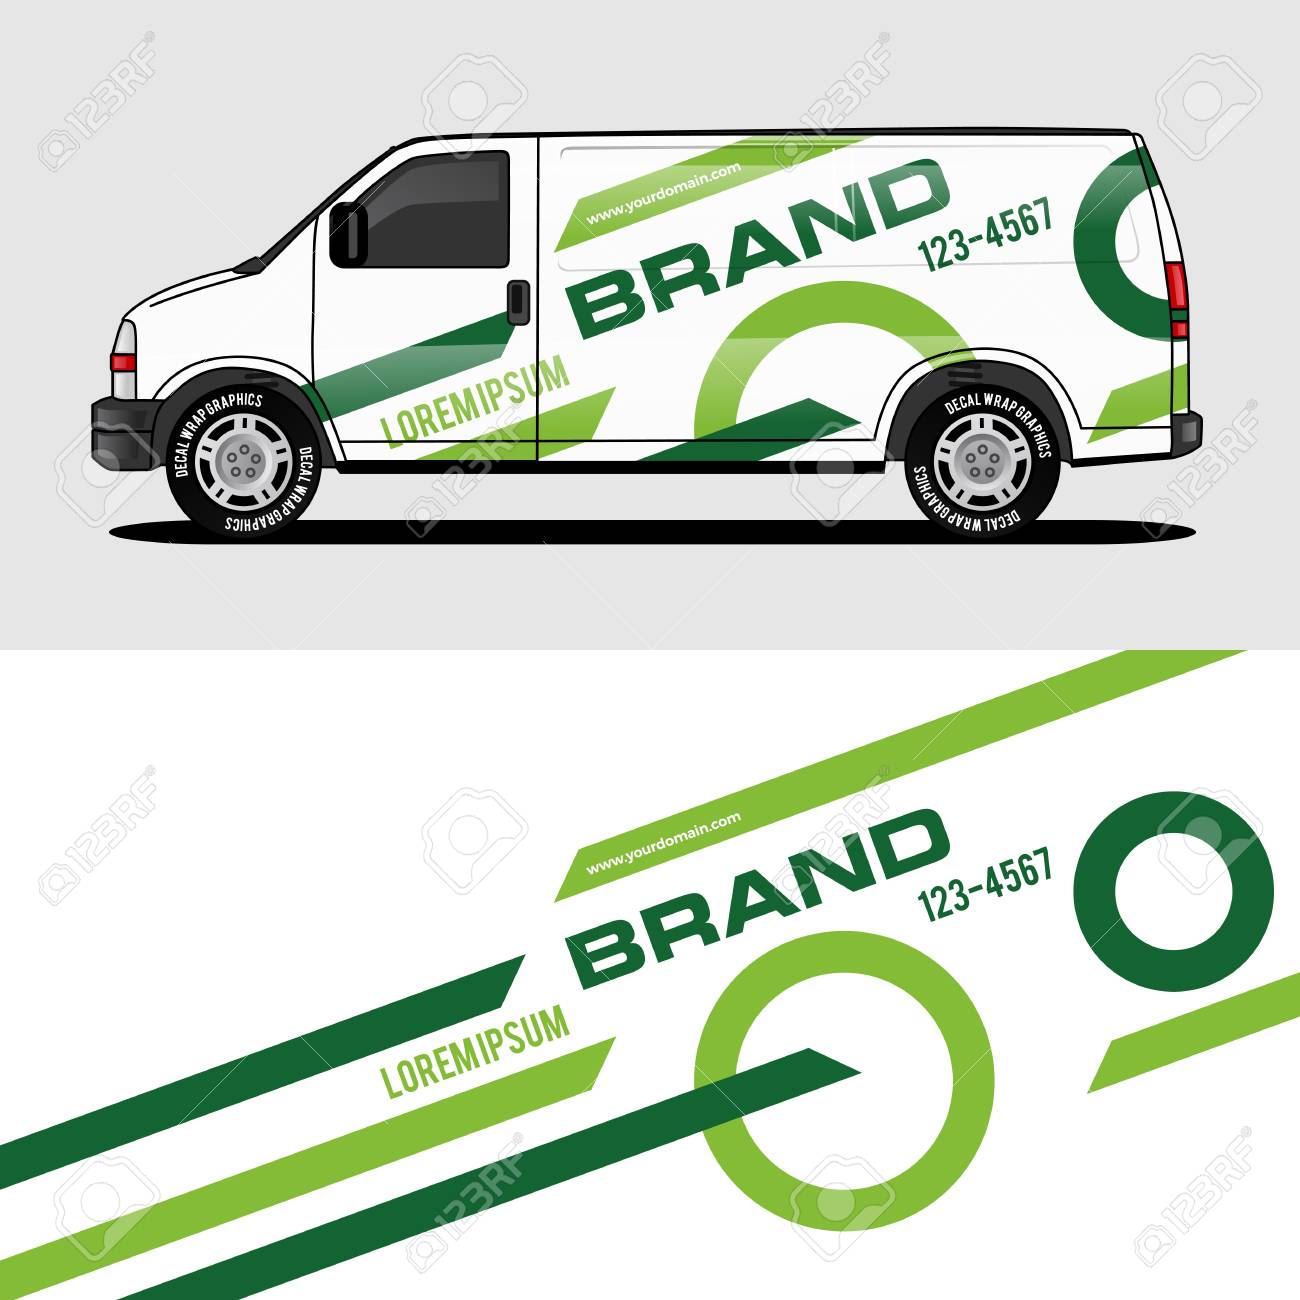 Car livery green van wrap design wrapping sticker and decal design for corporate company branding vector